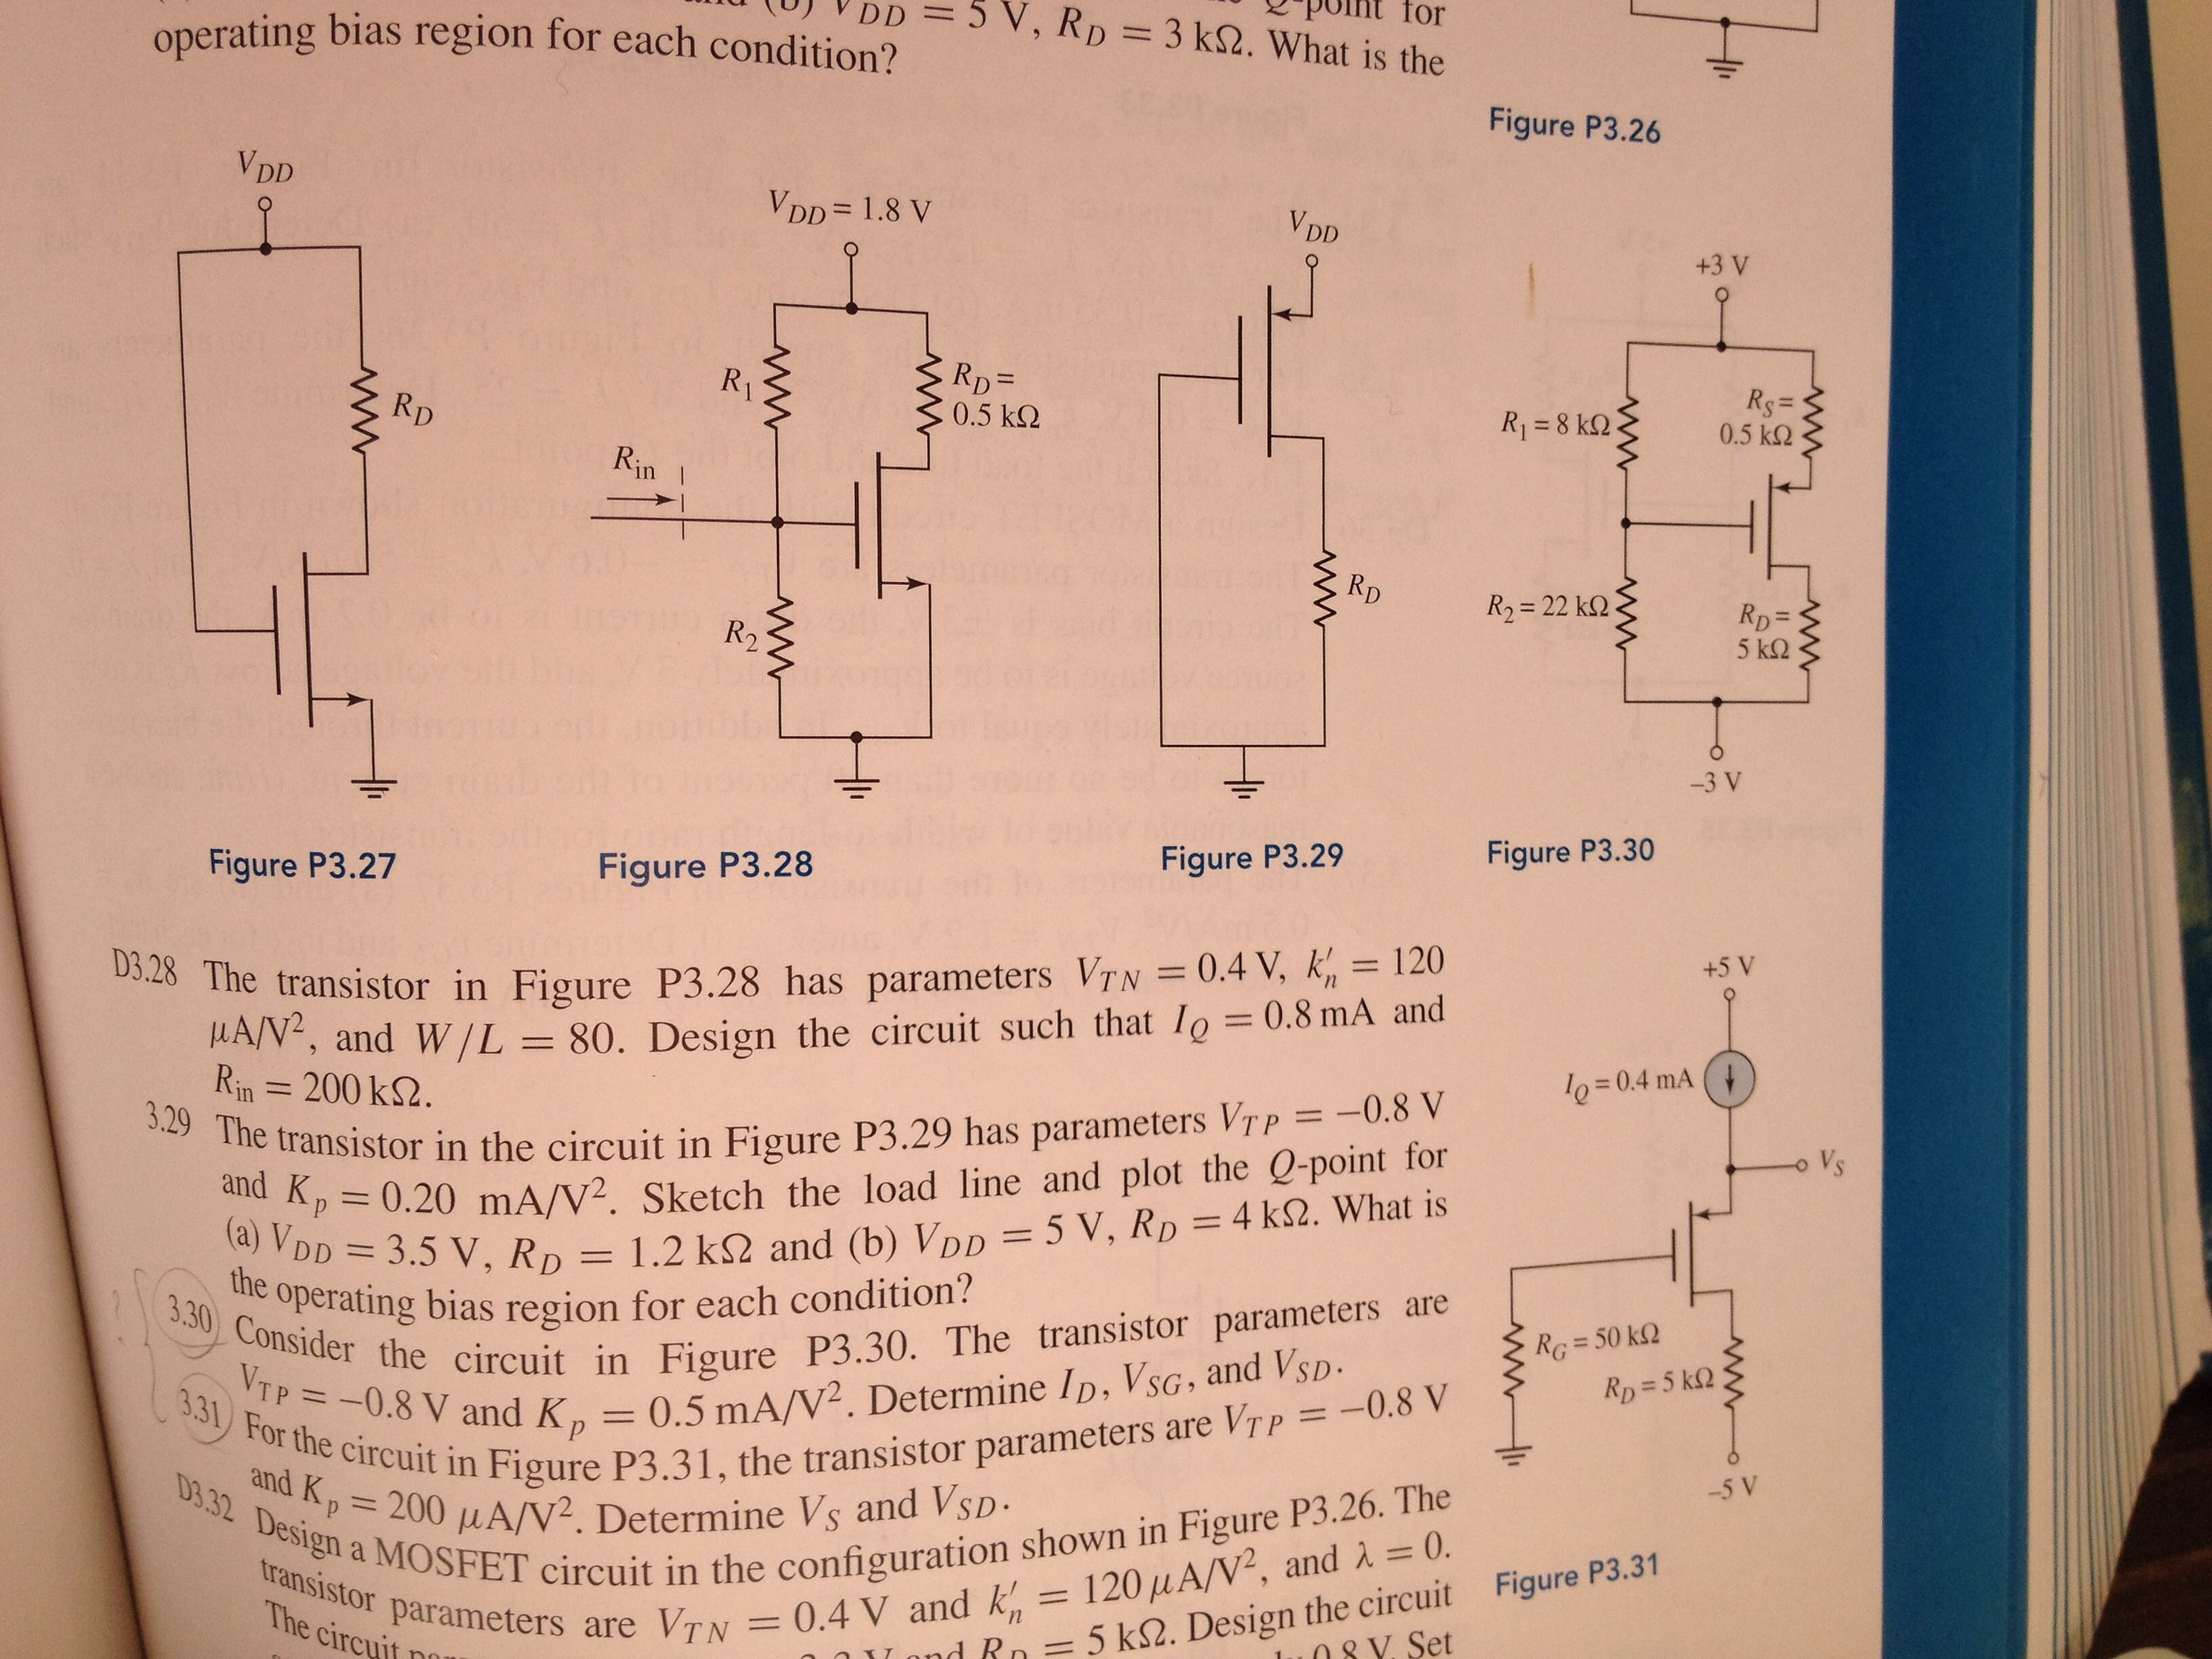 The transistor in Figure P3.28 has parameters D